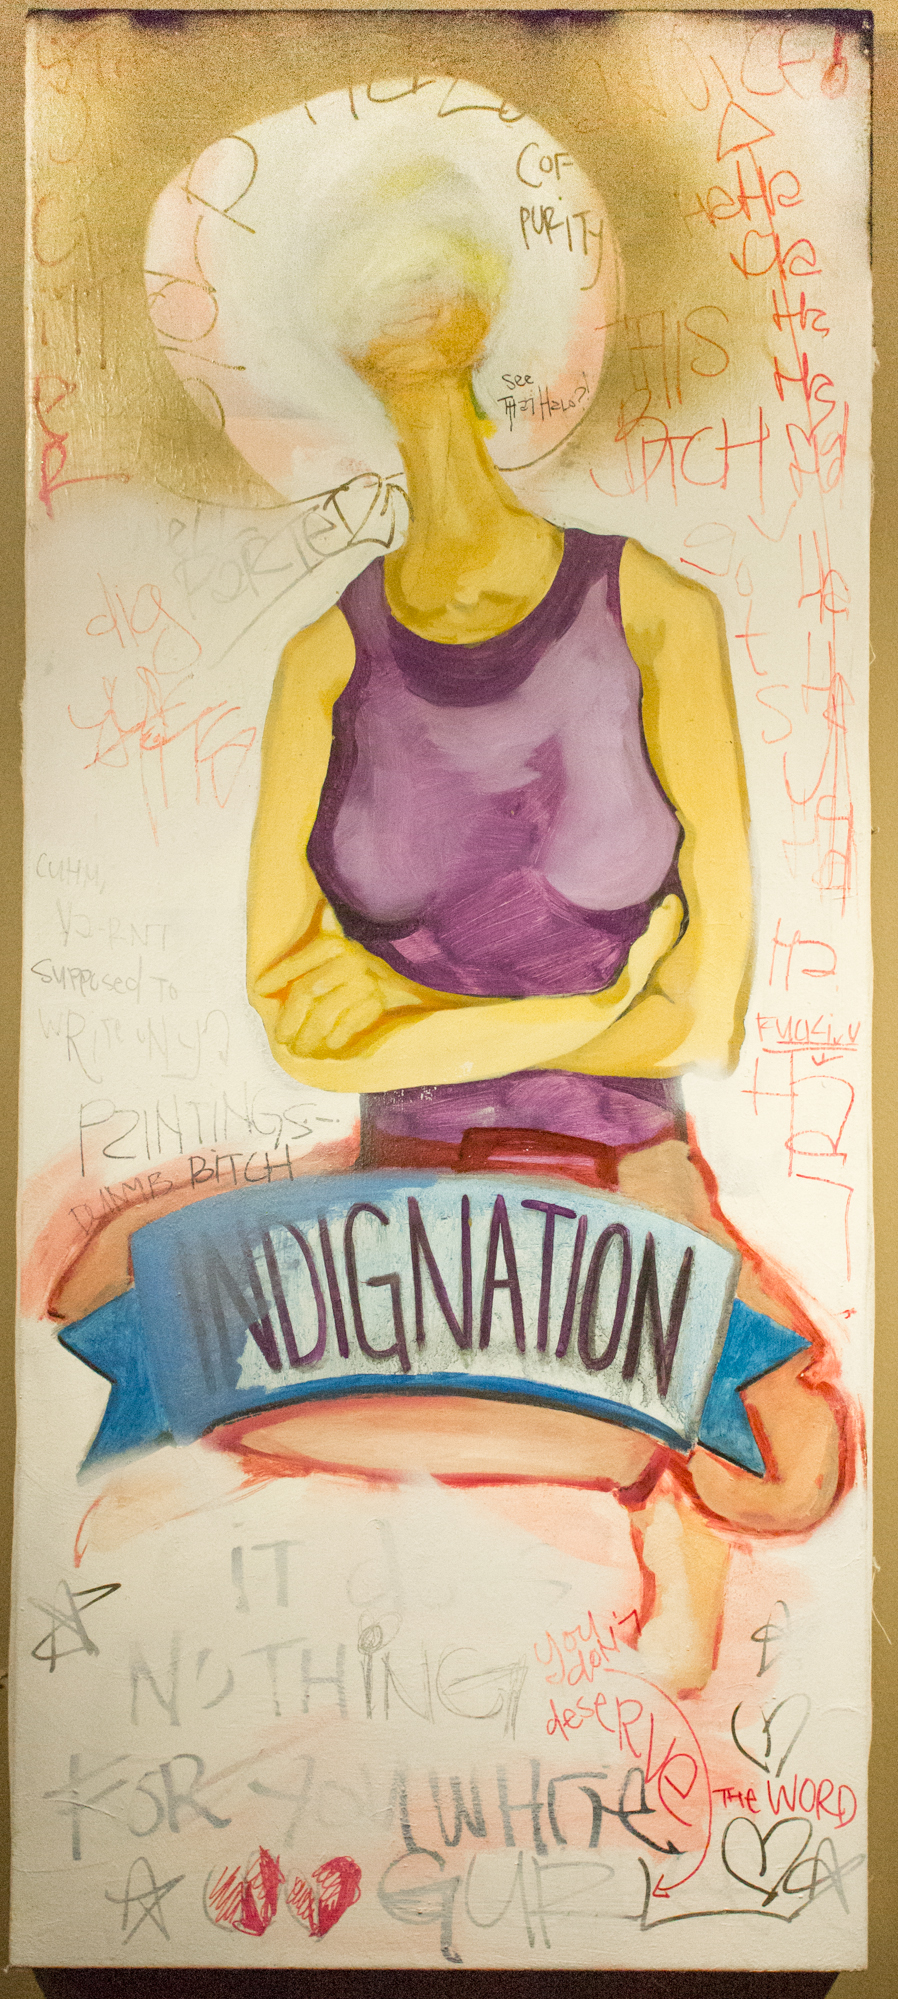 Indignation: It Does Nothing For You White Girl